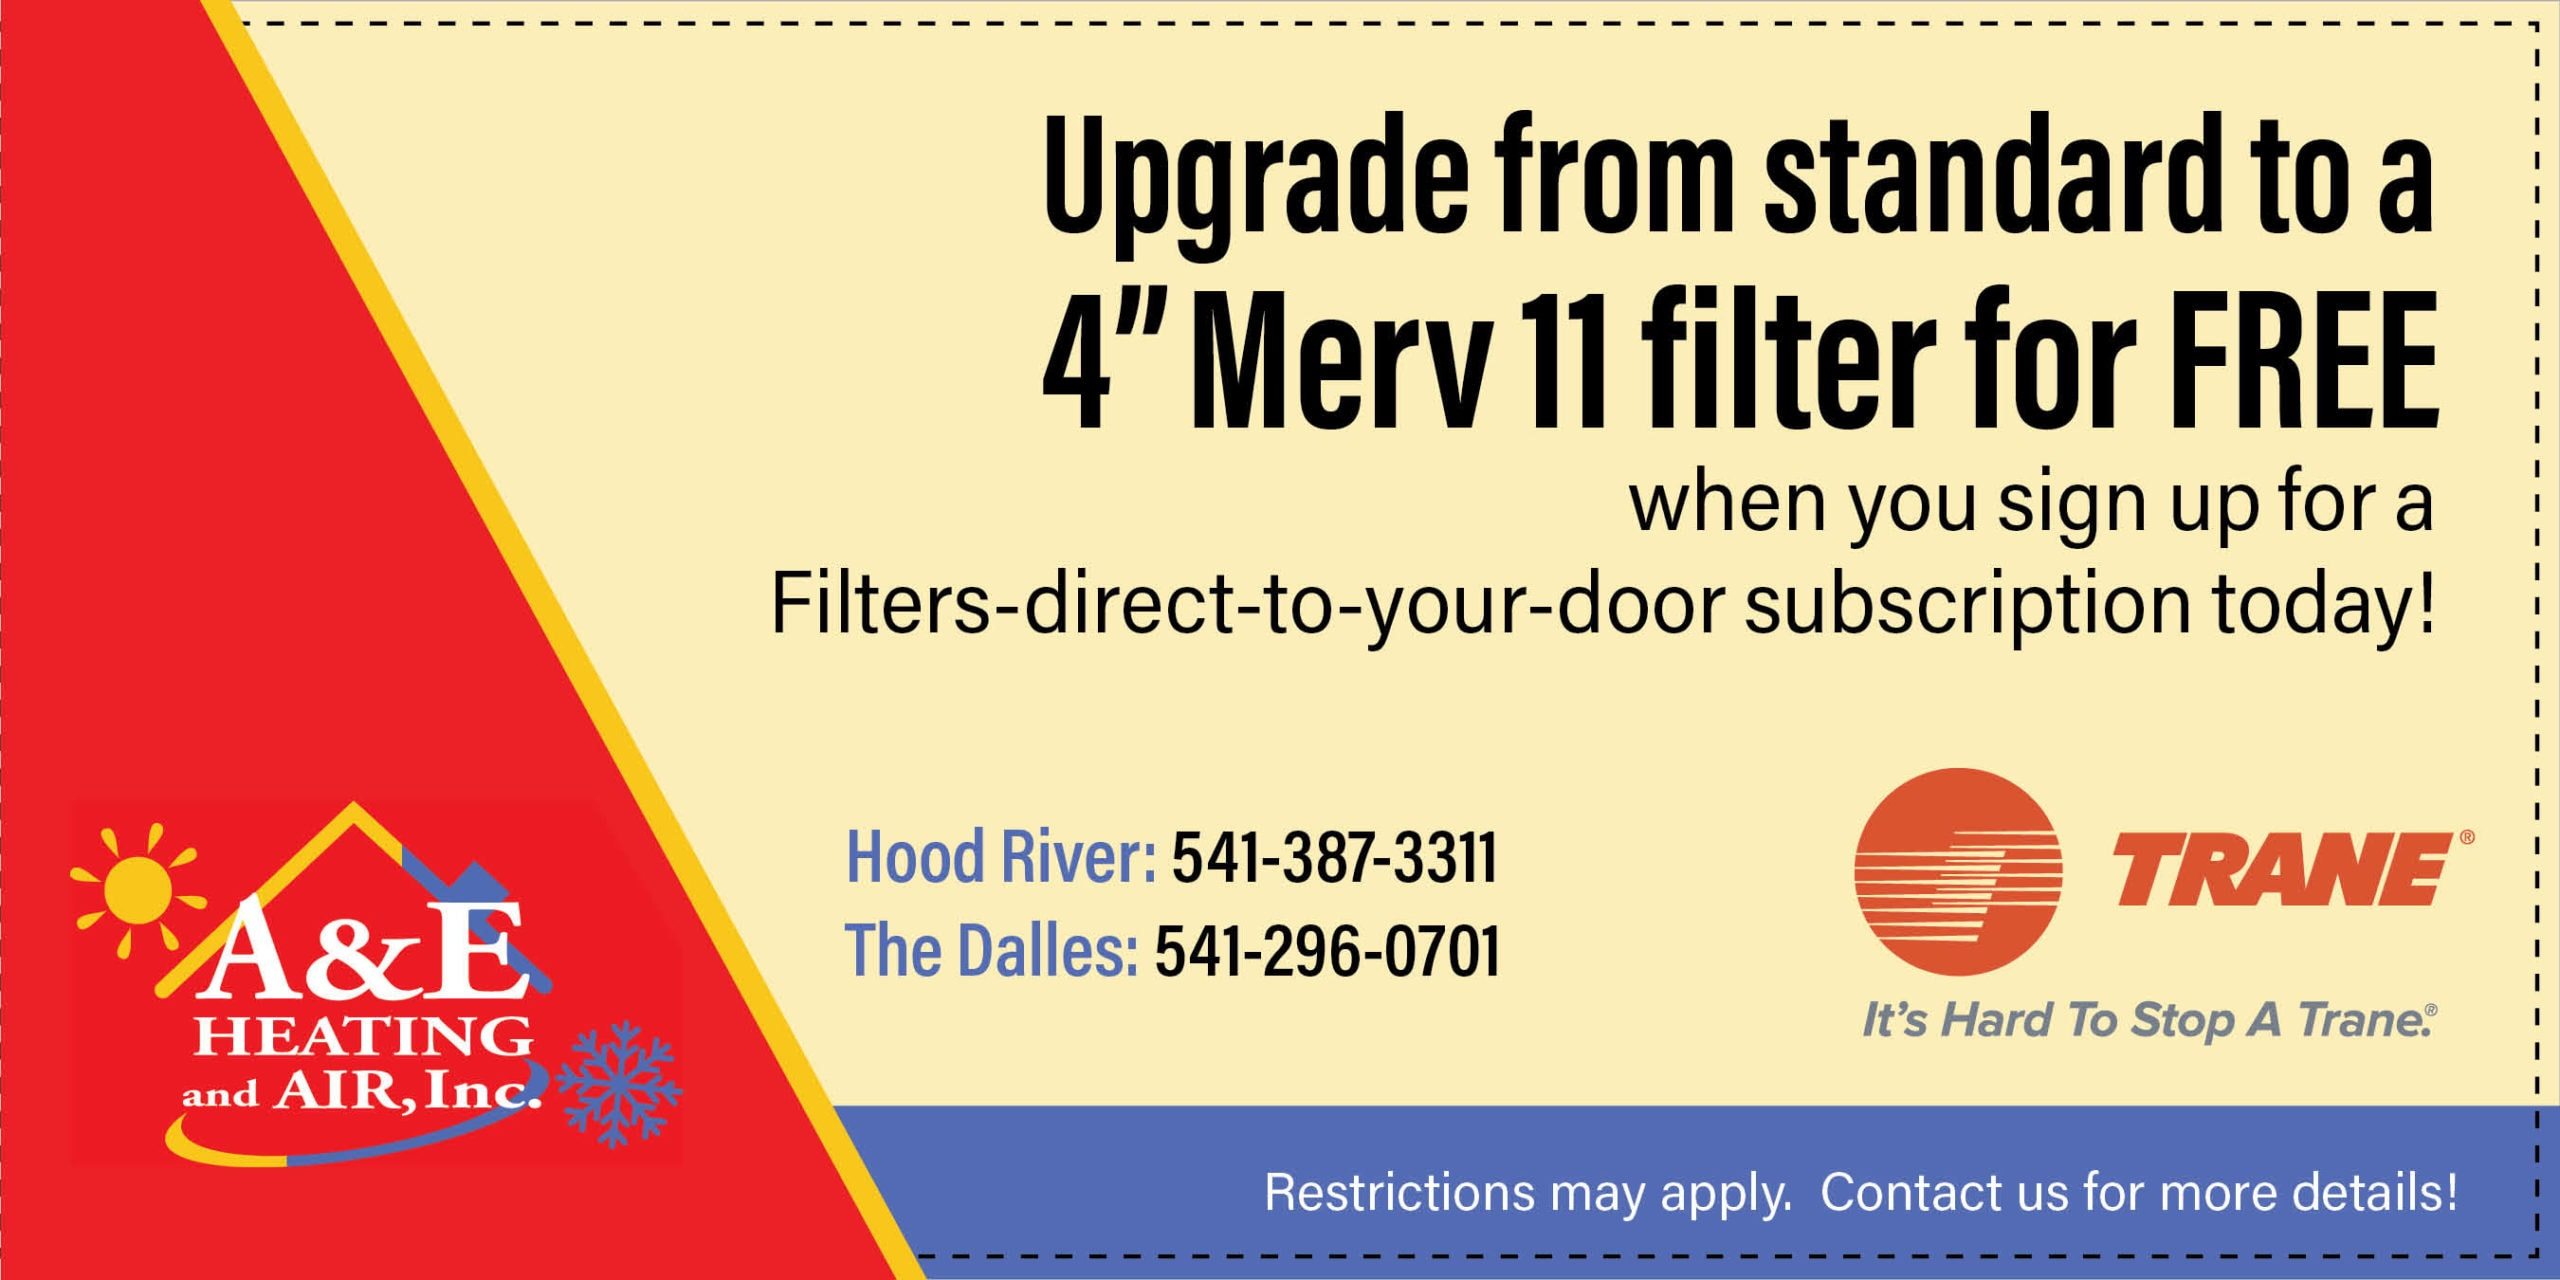 AEH Filter-upgrade-coupon